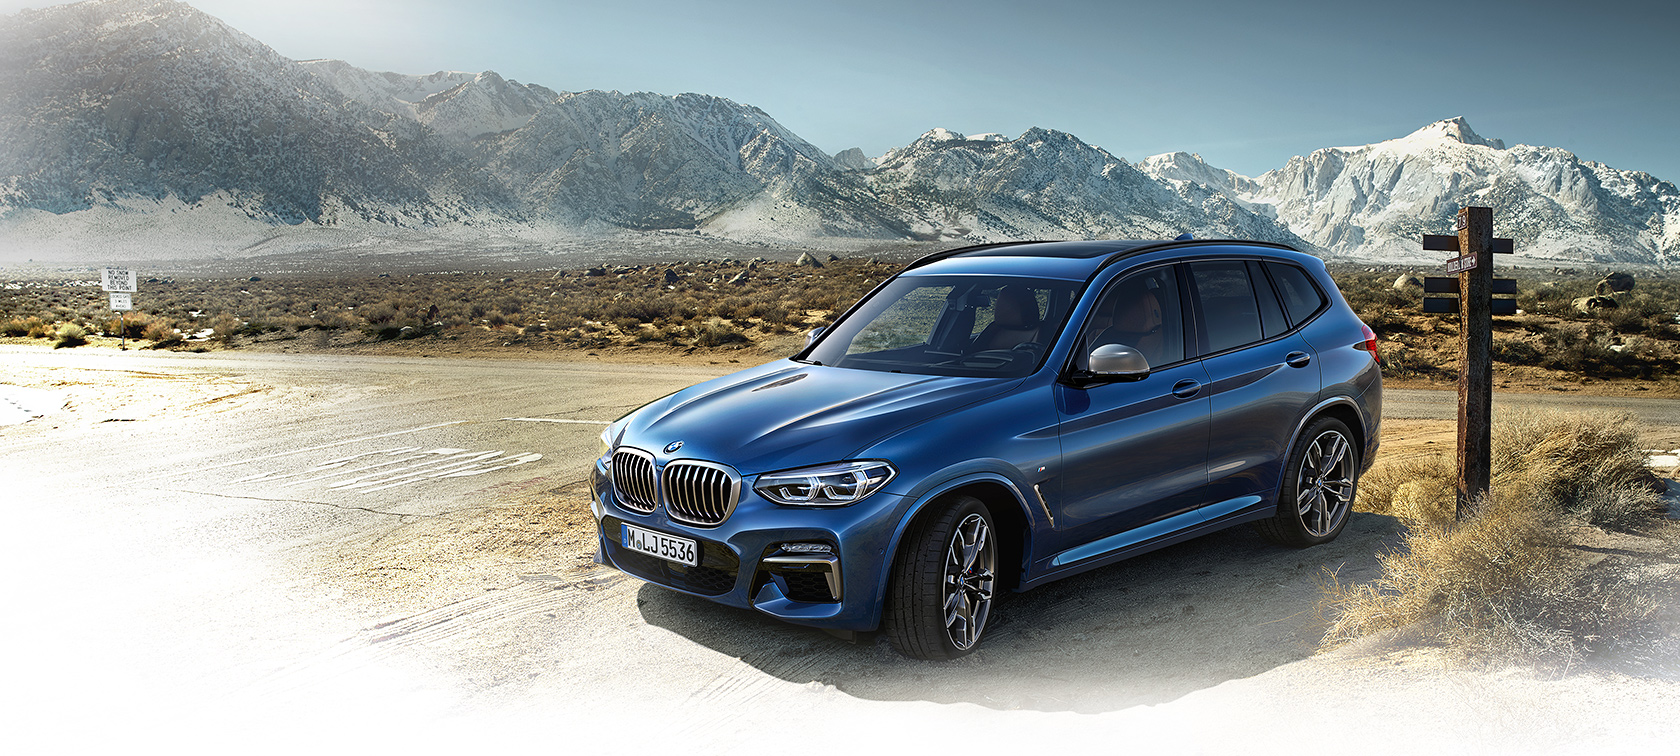 BMW X-Series X3 in bright blue frontside view: mountain road